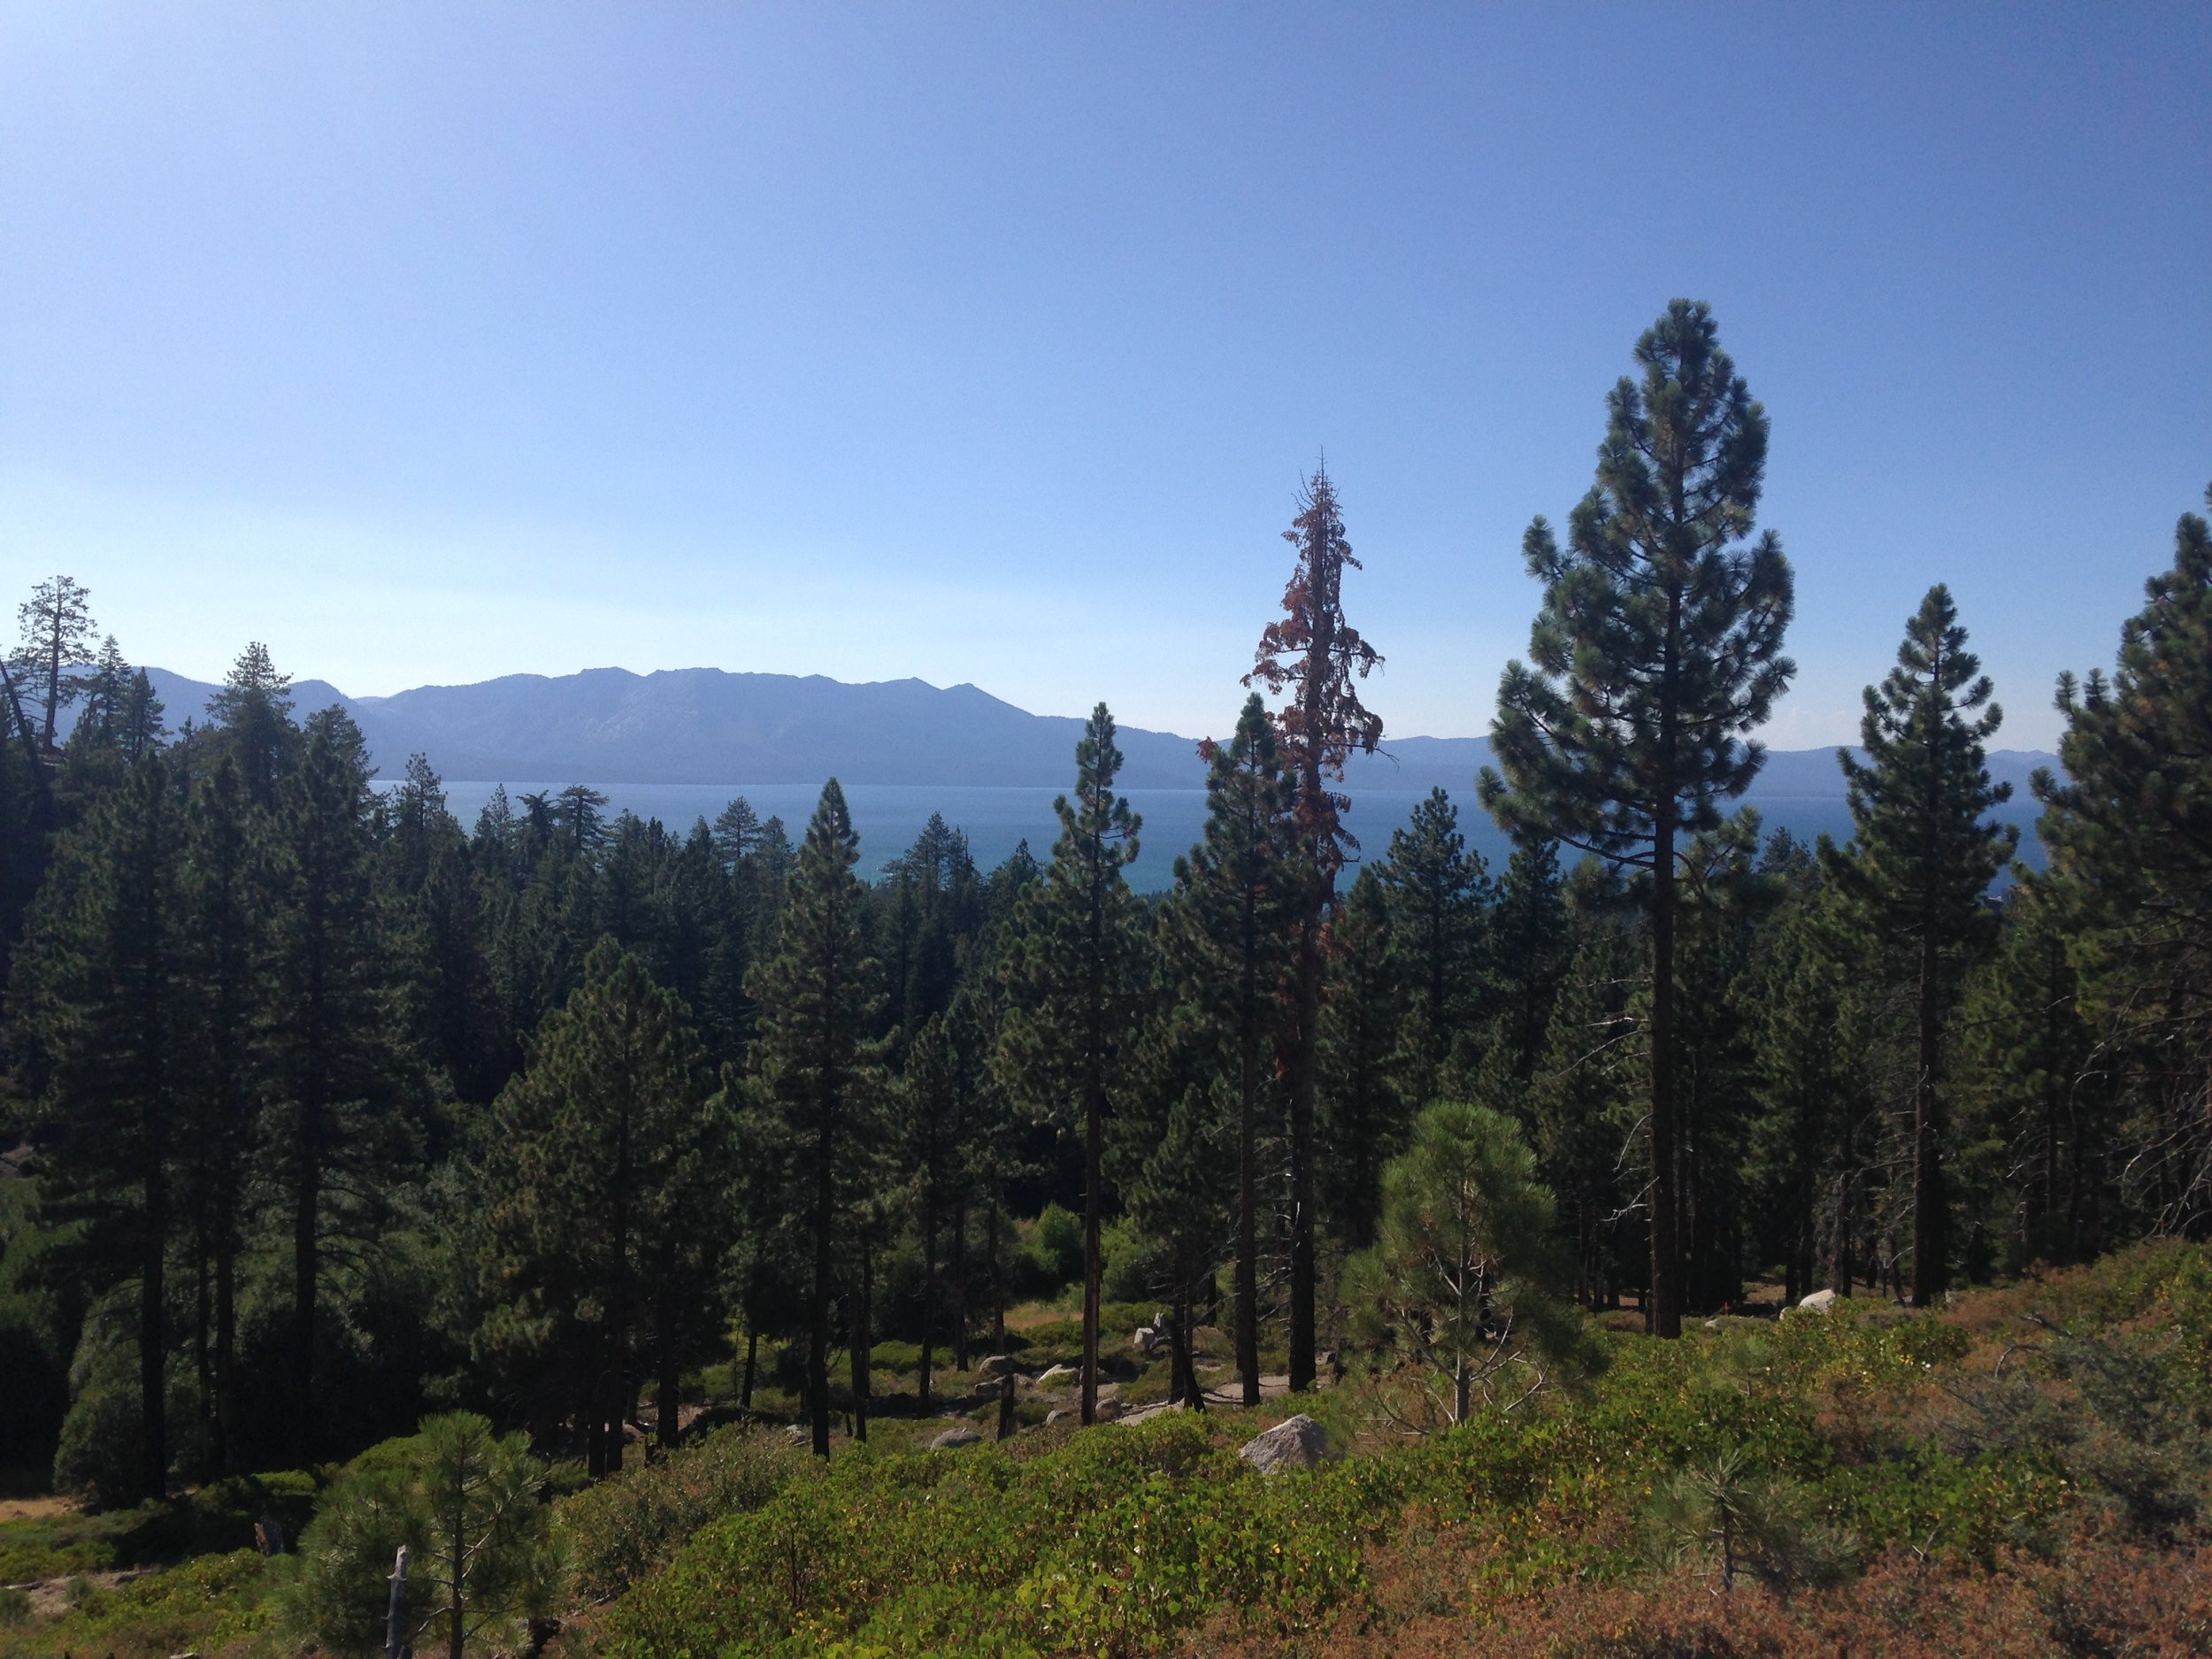 View of Lake Tahoe, CA. from the running/hiking trails.